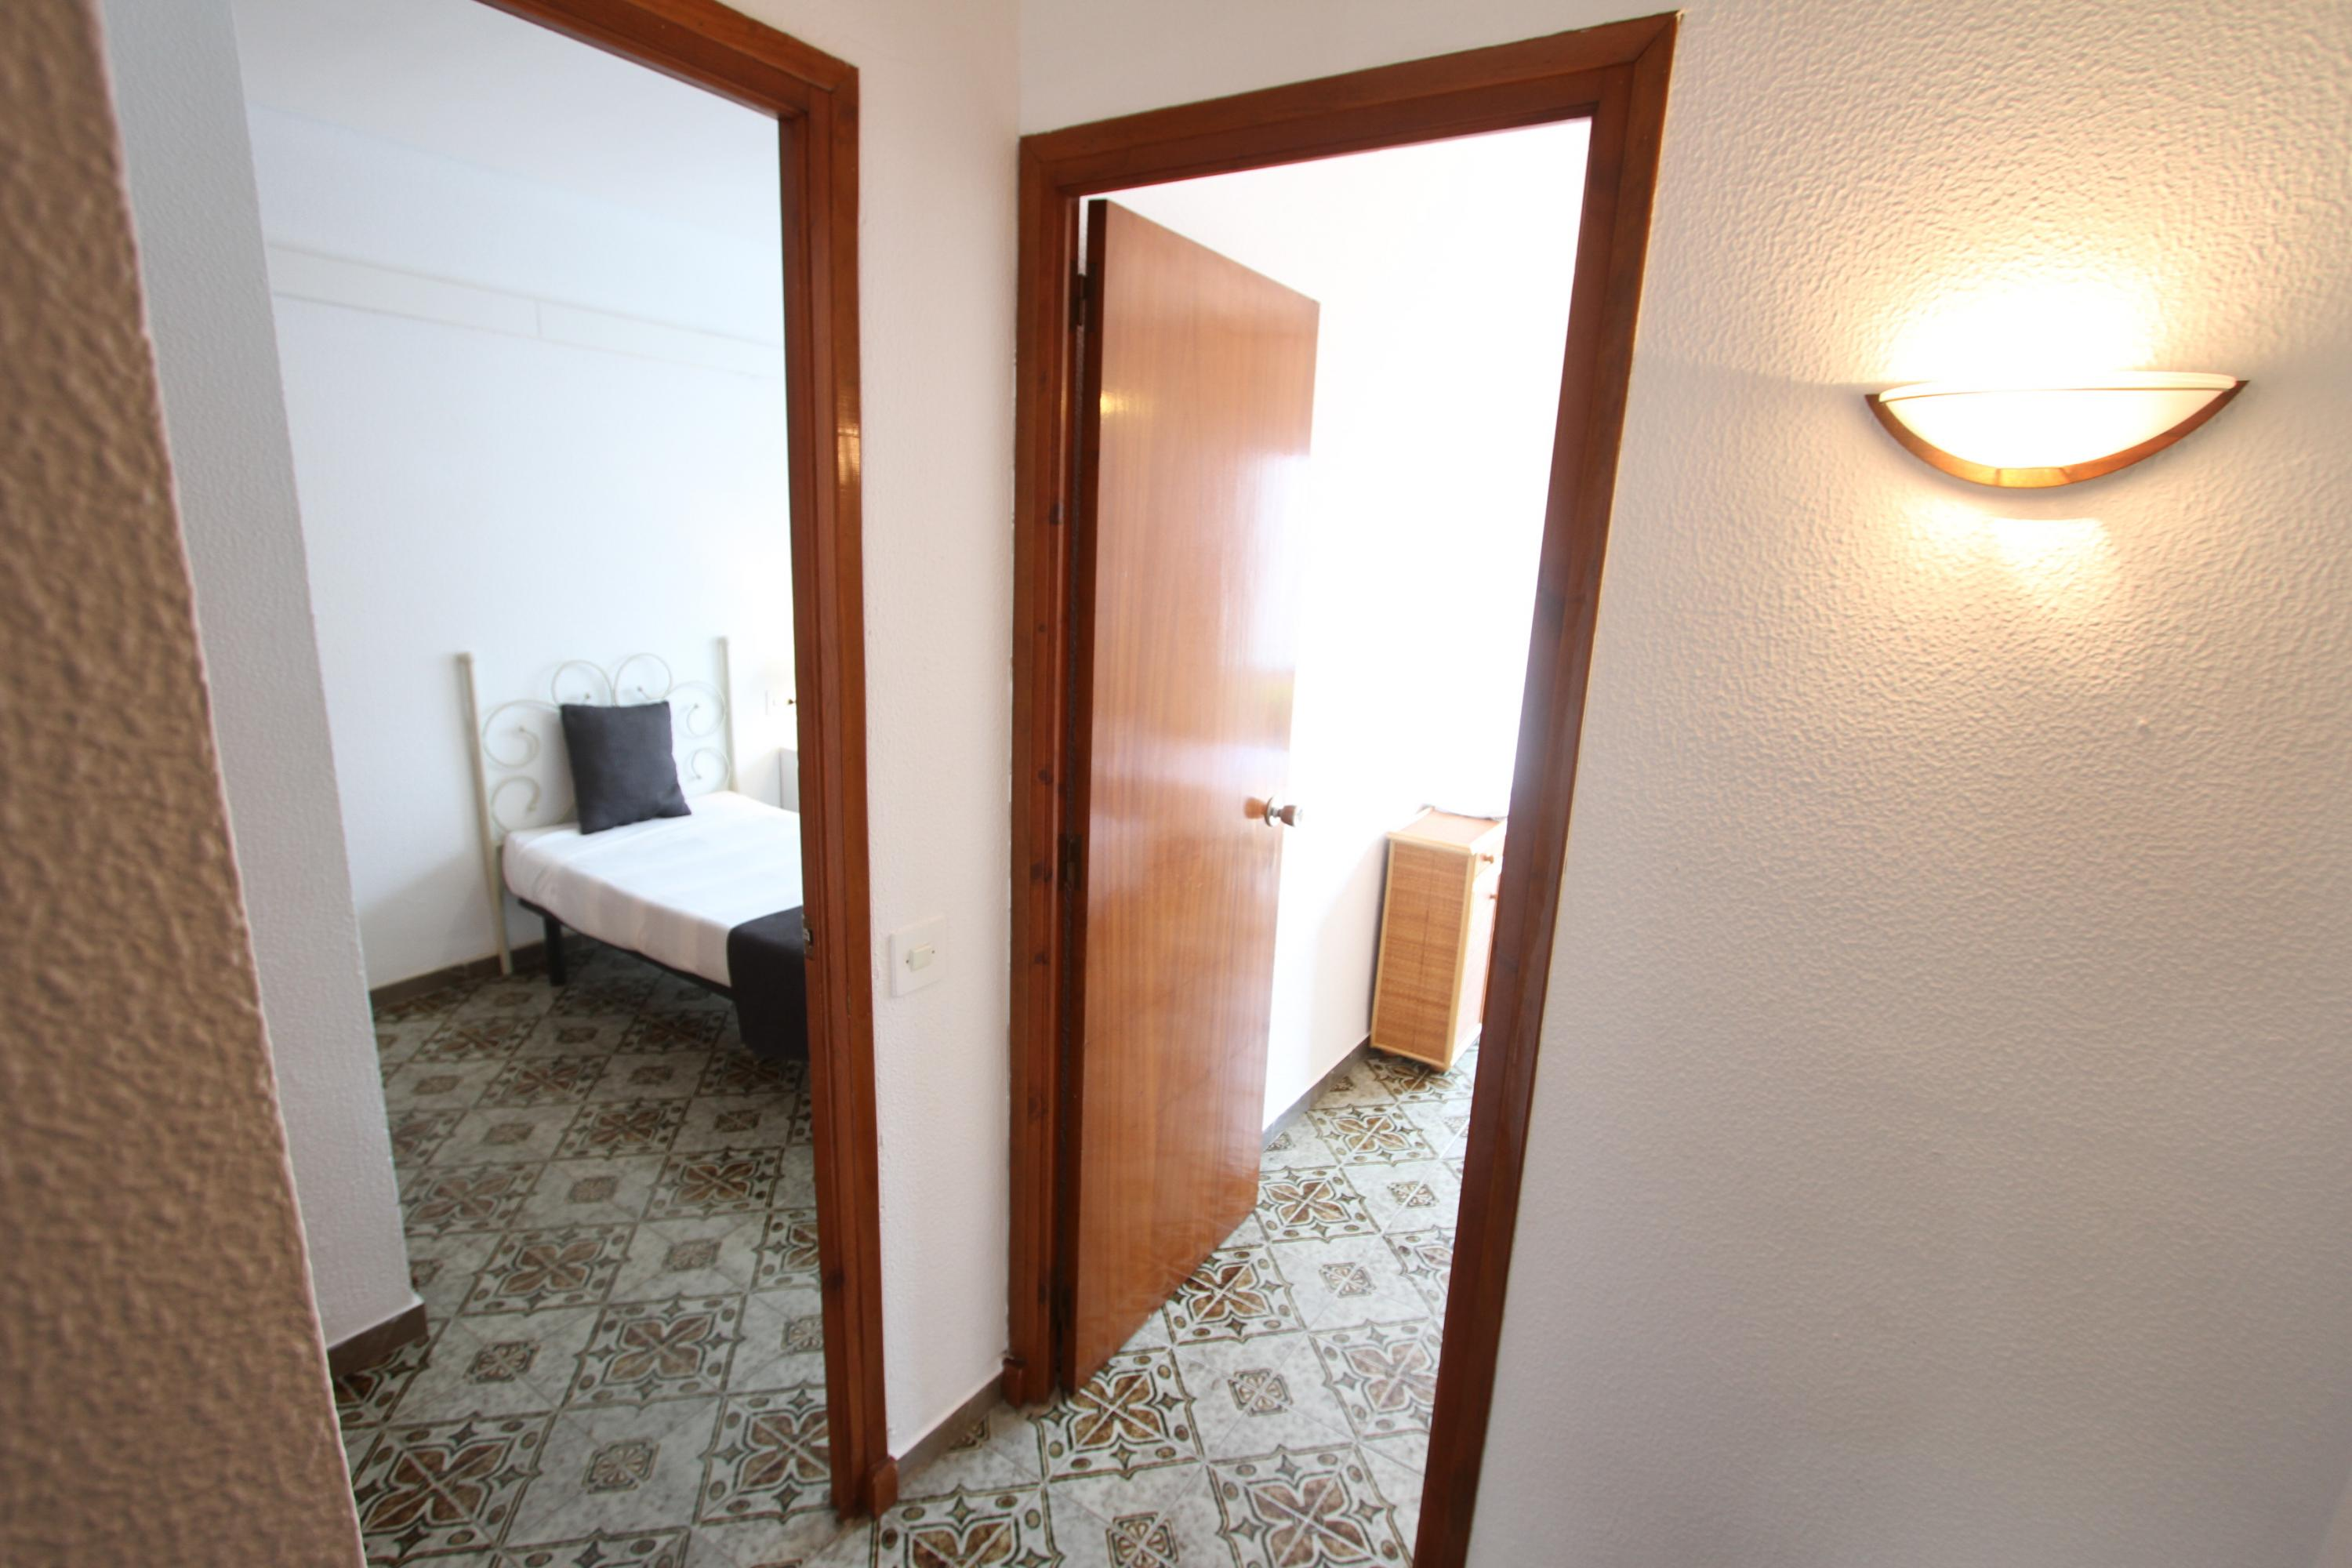 MC05 MC - 2 hab - 6pax Apartament Playa Cambrils